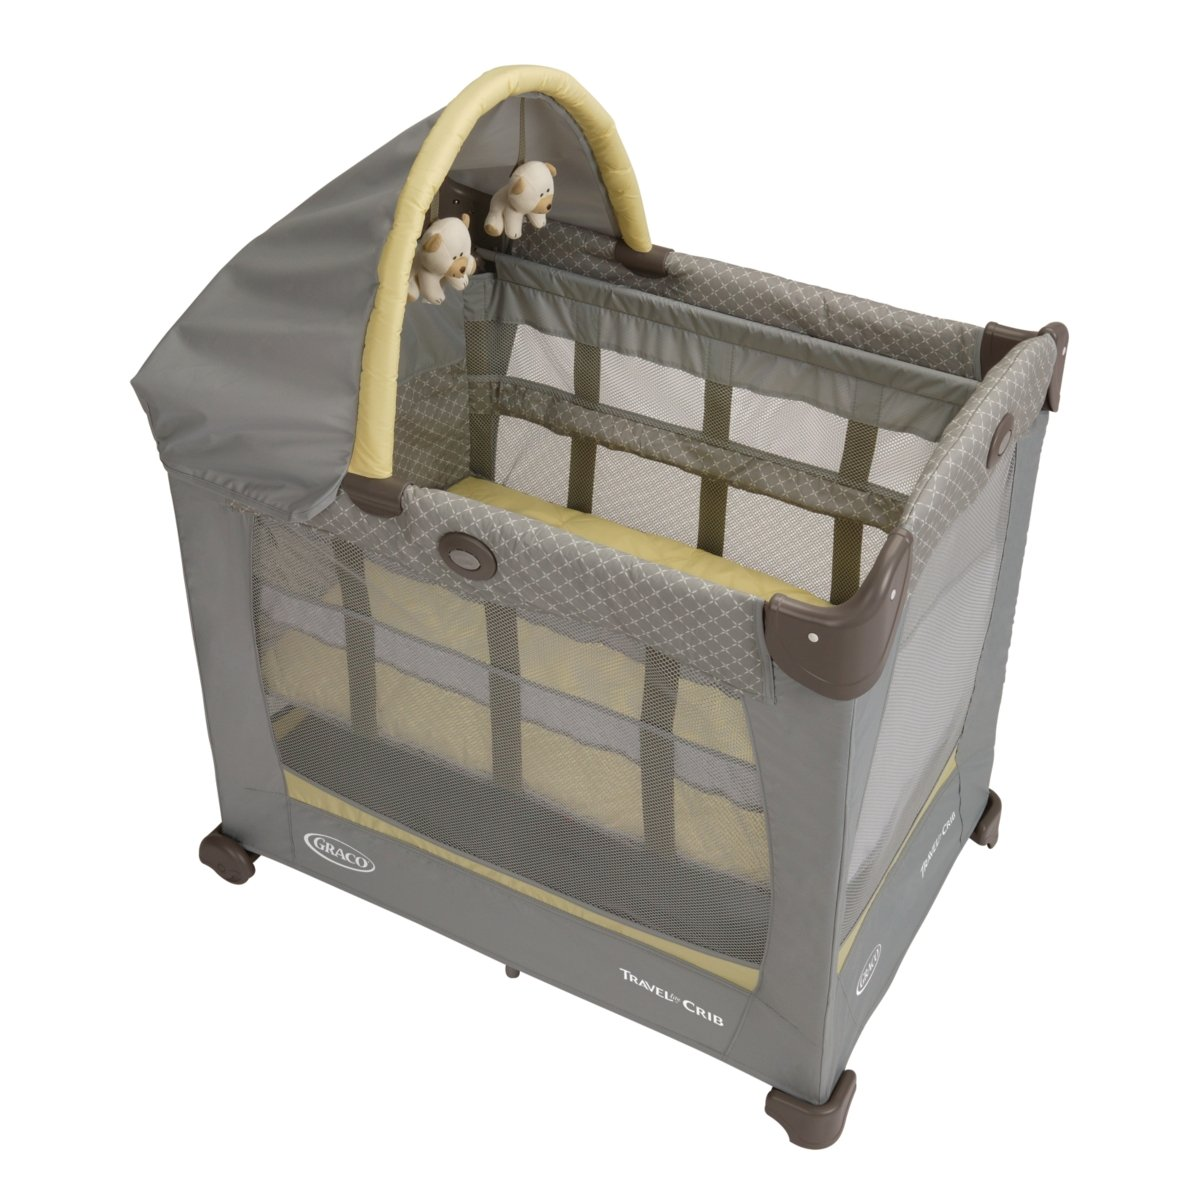 graco bedroom bassinet portable crib. amazon.com: graco travel lite crib with stages, peyton (discontinued by manufacturer): baby bedroom bassinet portable